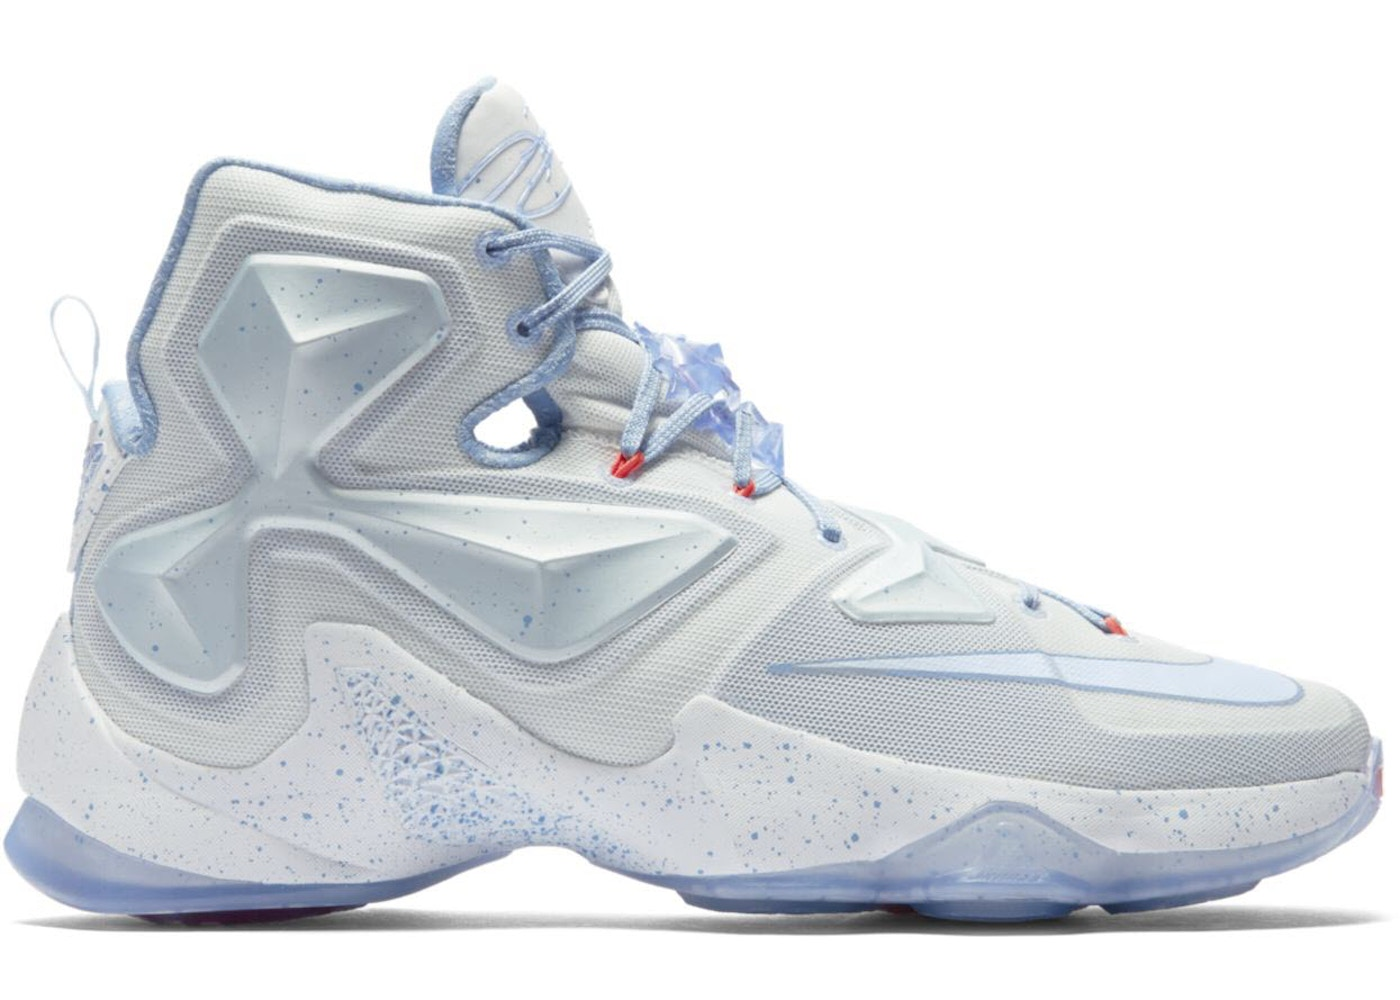 outlet store 2cae0 1763d Buy Nike LeBron 13 Shoes & Deadstock Sneakers